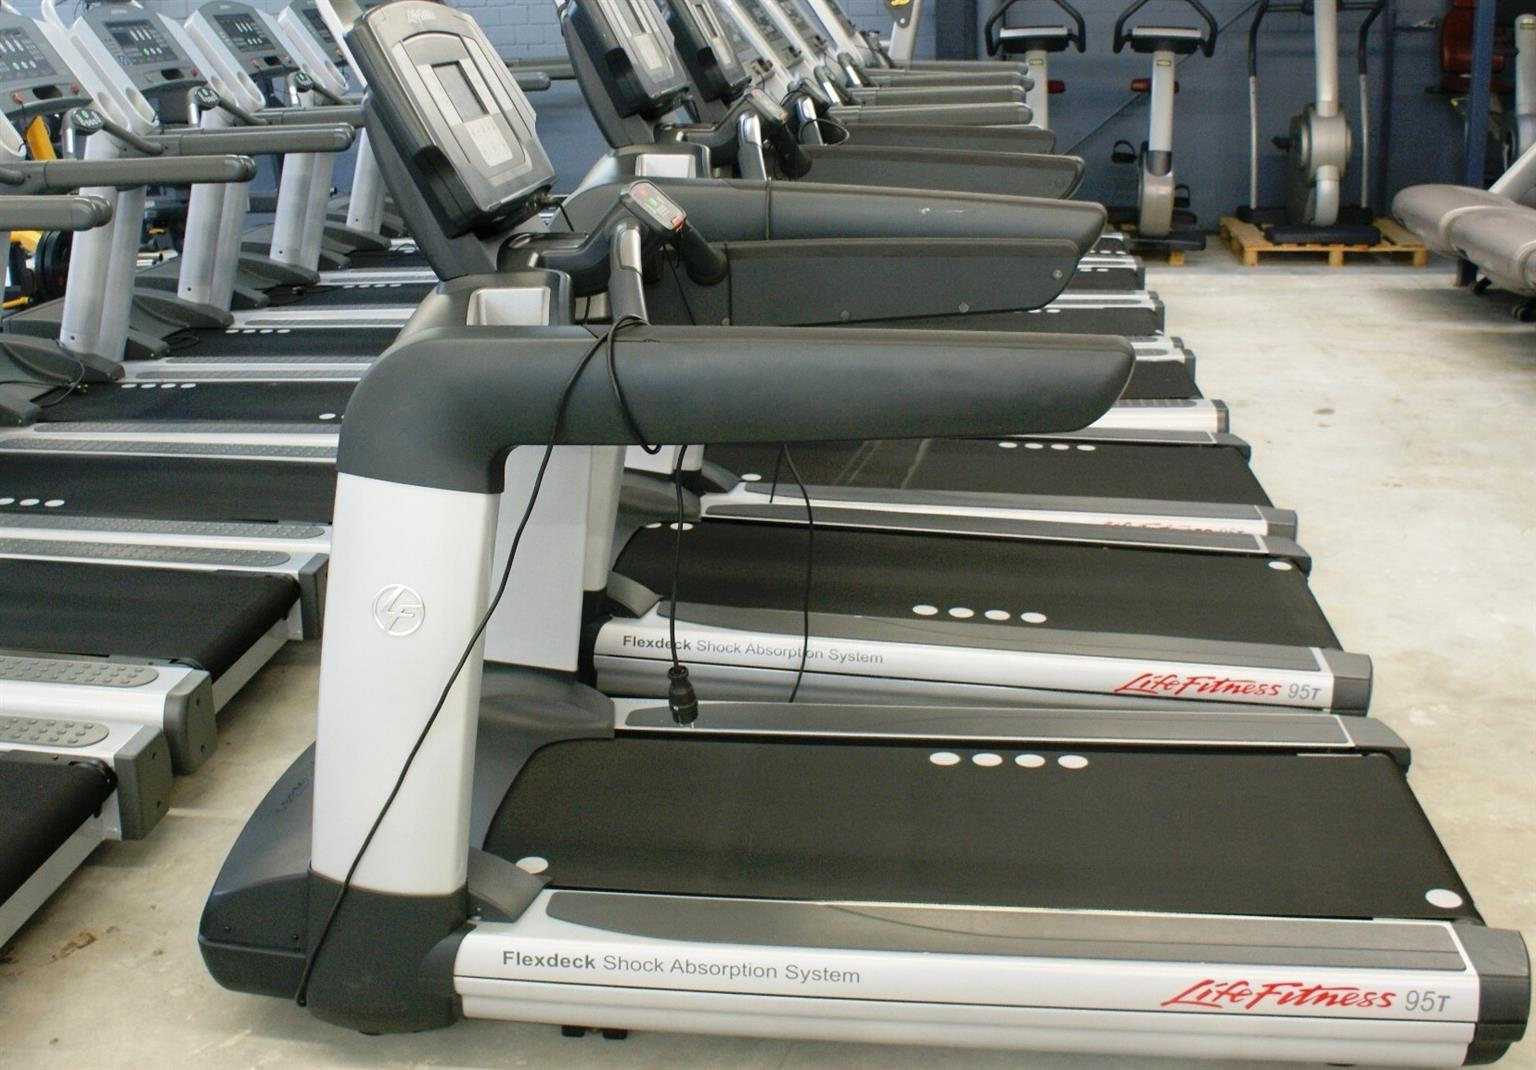 Life Fitness Inspire 95T Elevation Series